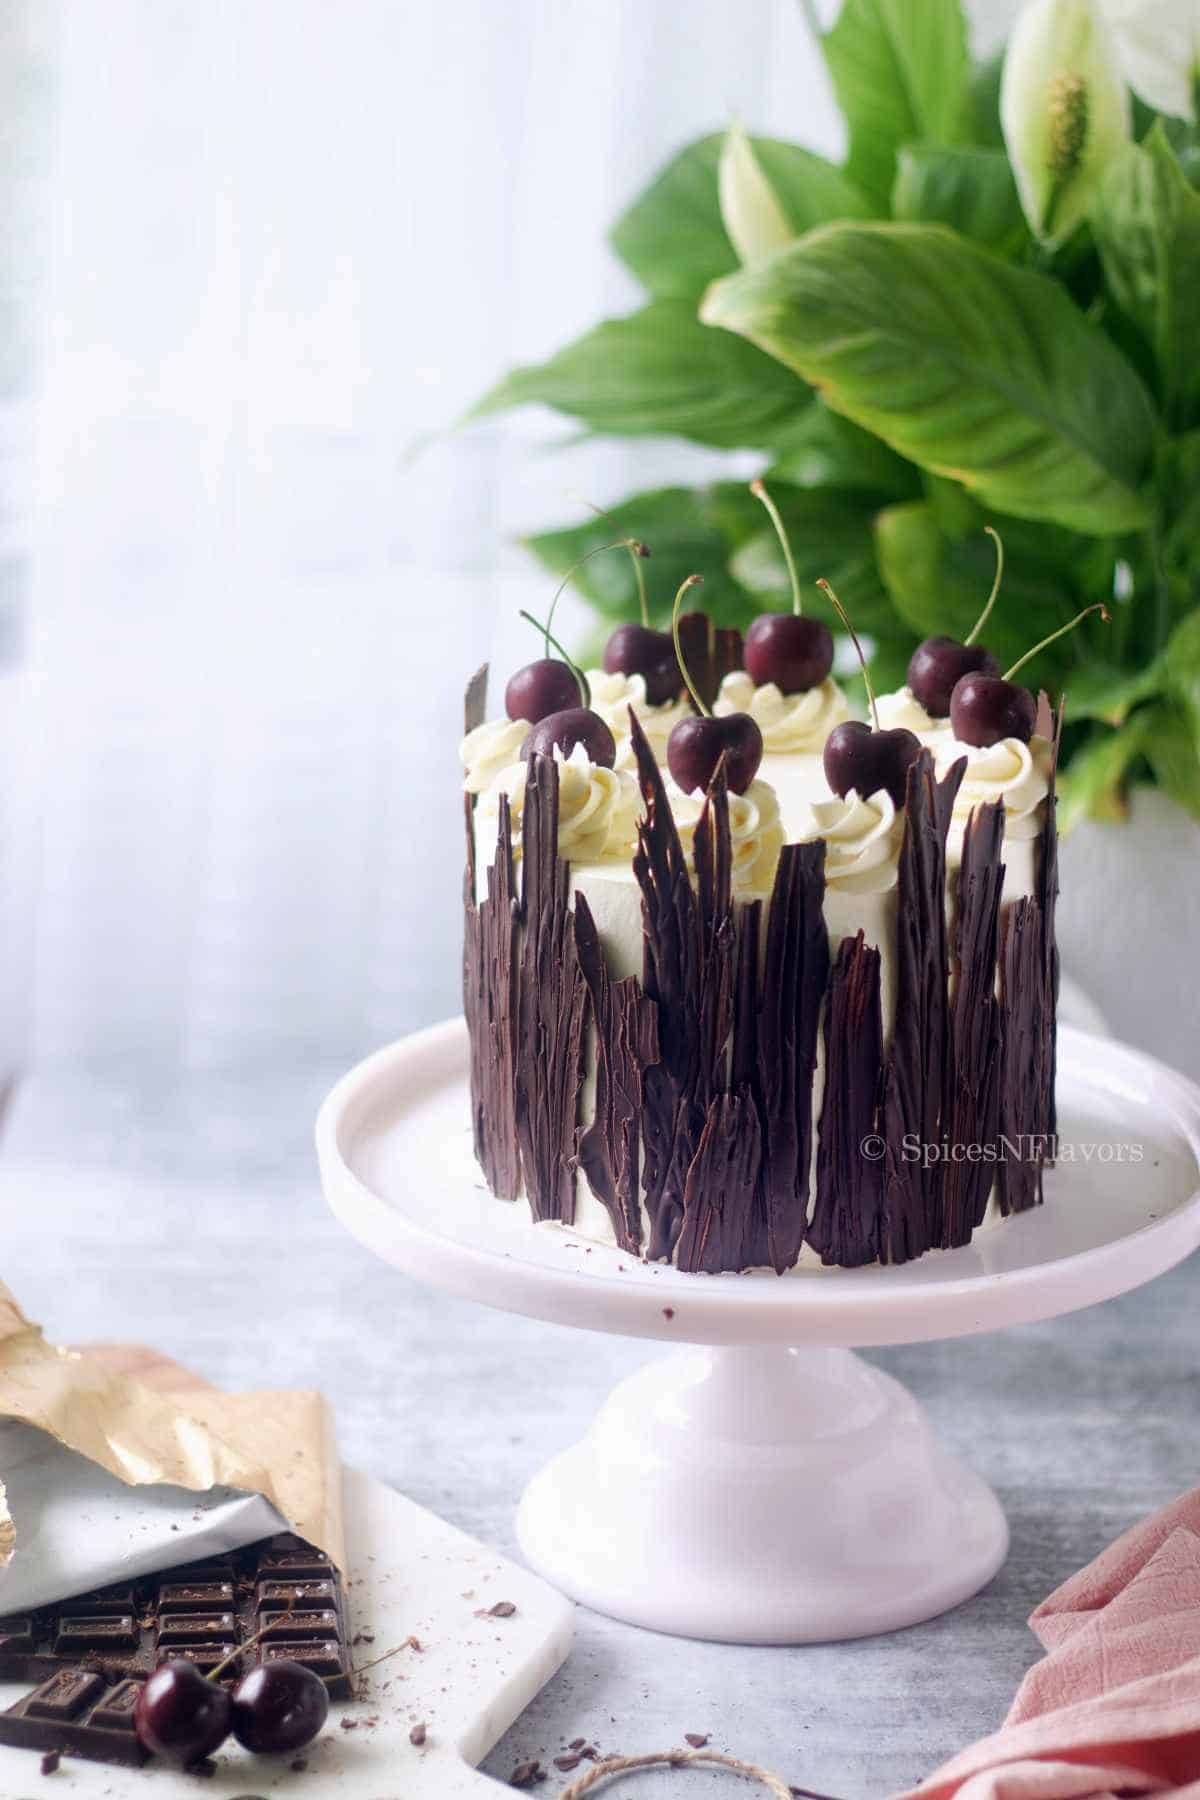 black forest cake placed on a pink cake stand with a green plant in the background